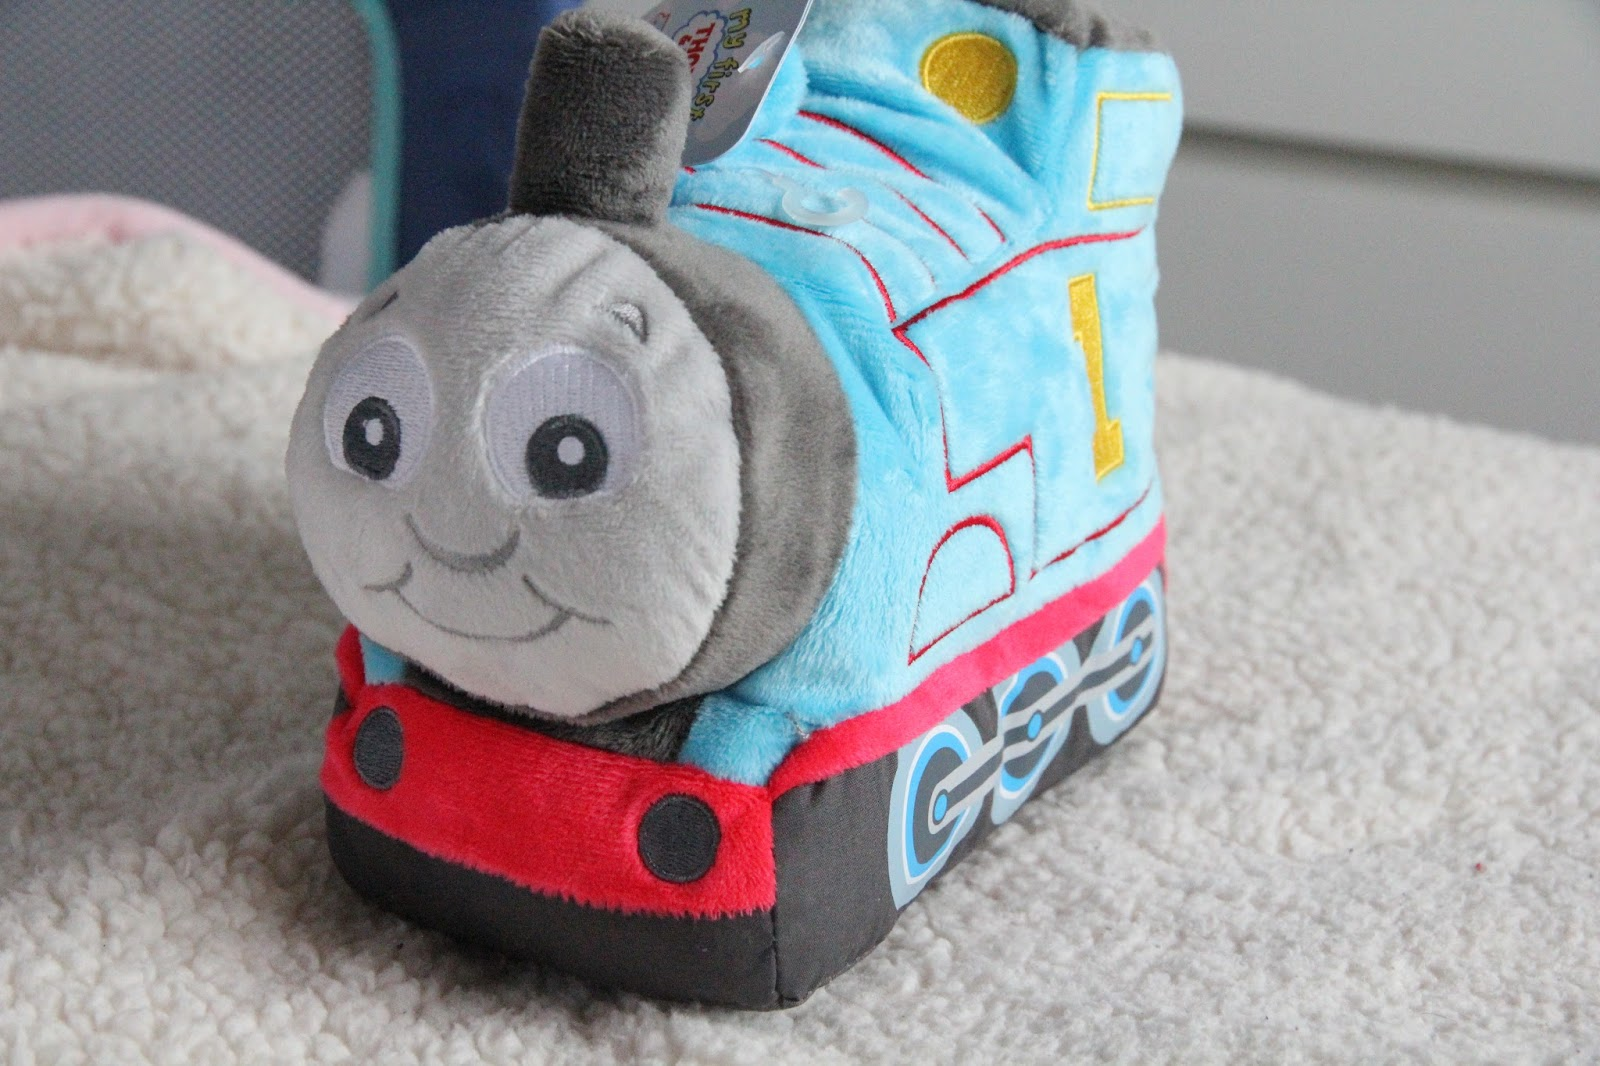 Thomas and Friends has always been a hit in our house, the children love watching him on TV, so it was no surprise that we loved this comforter and soft toy.